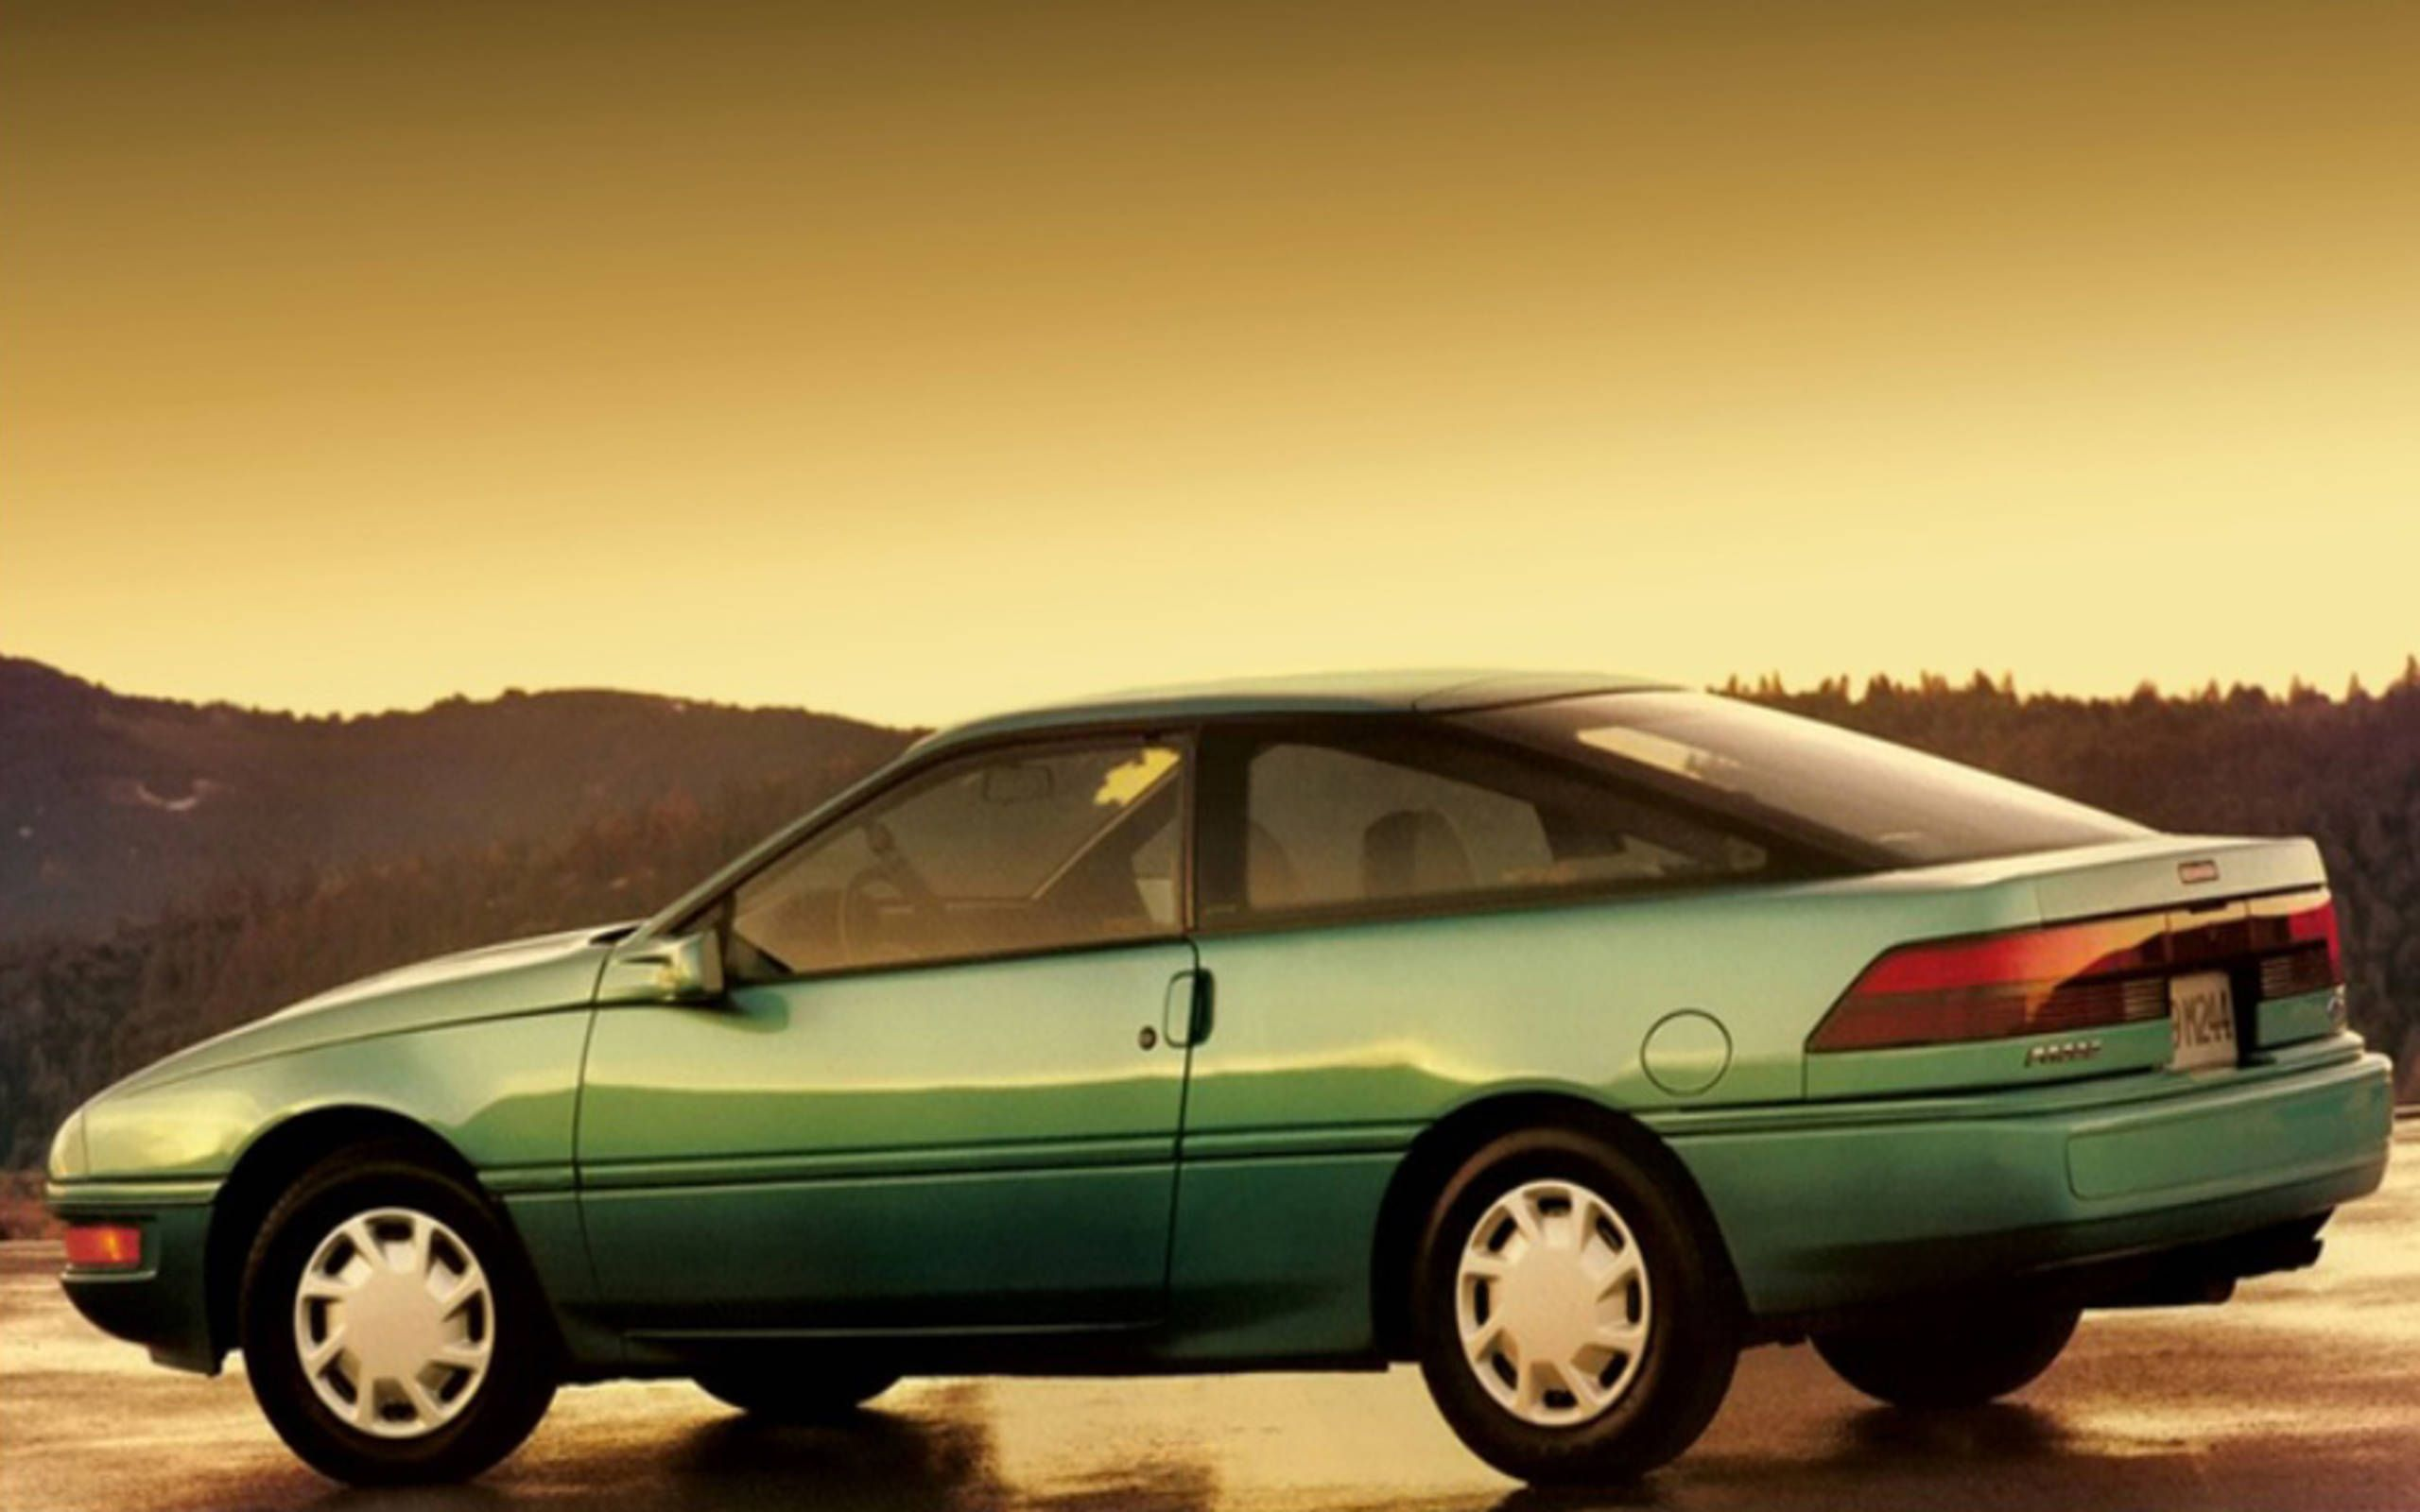 Cars From The '90s You Don't See Anymore